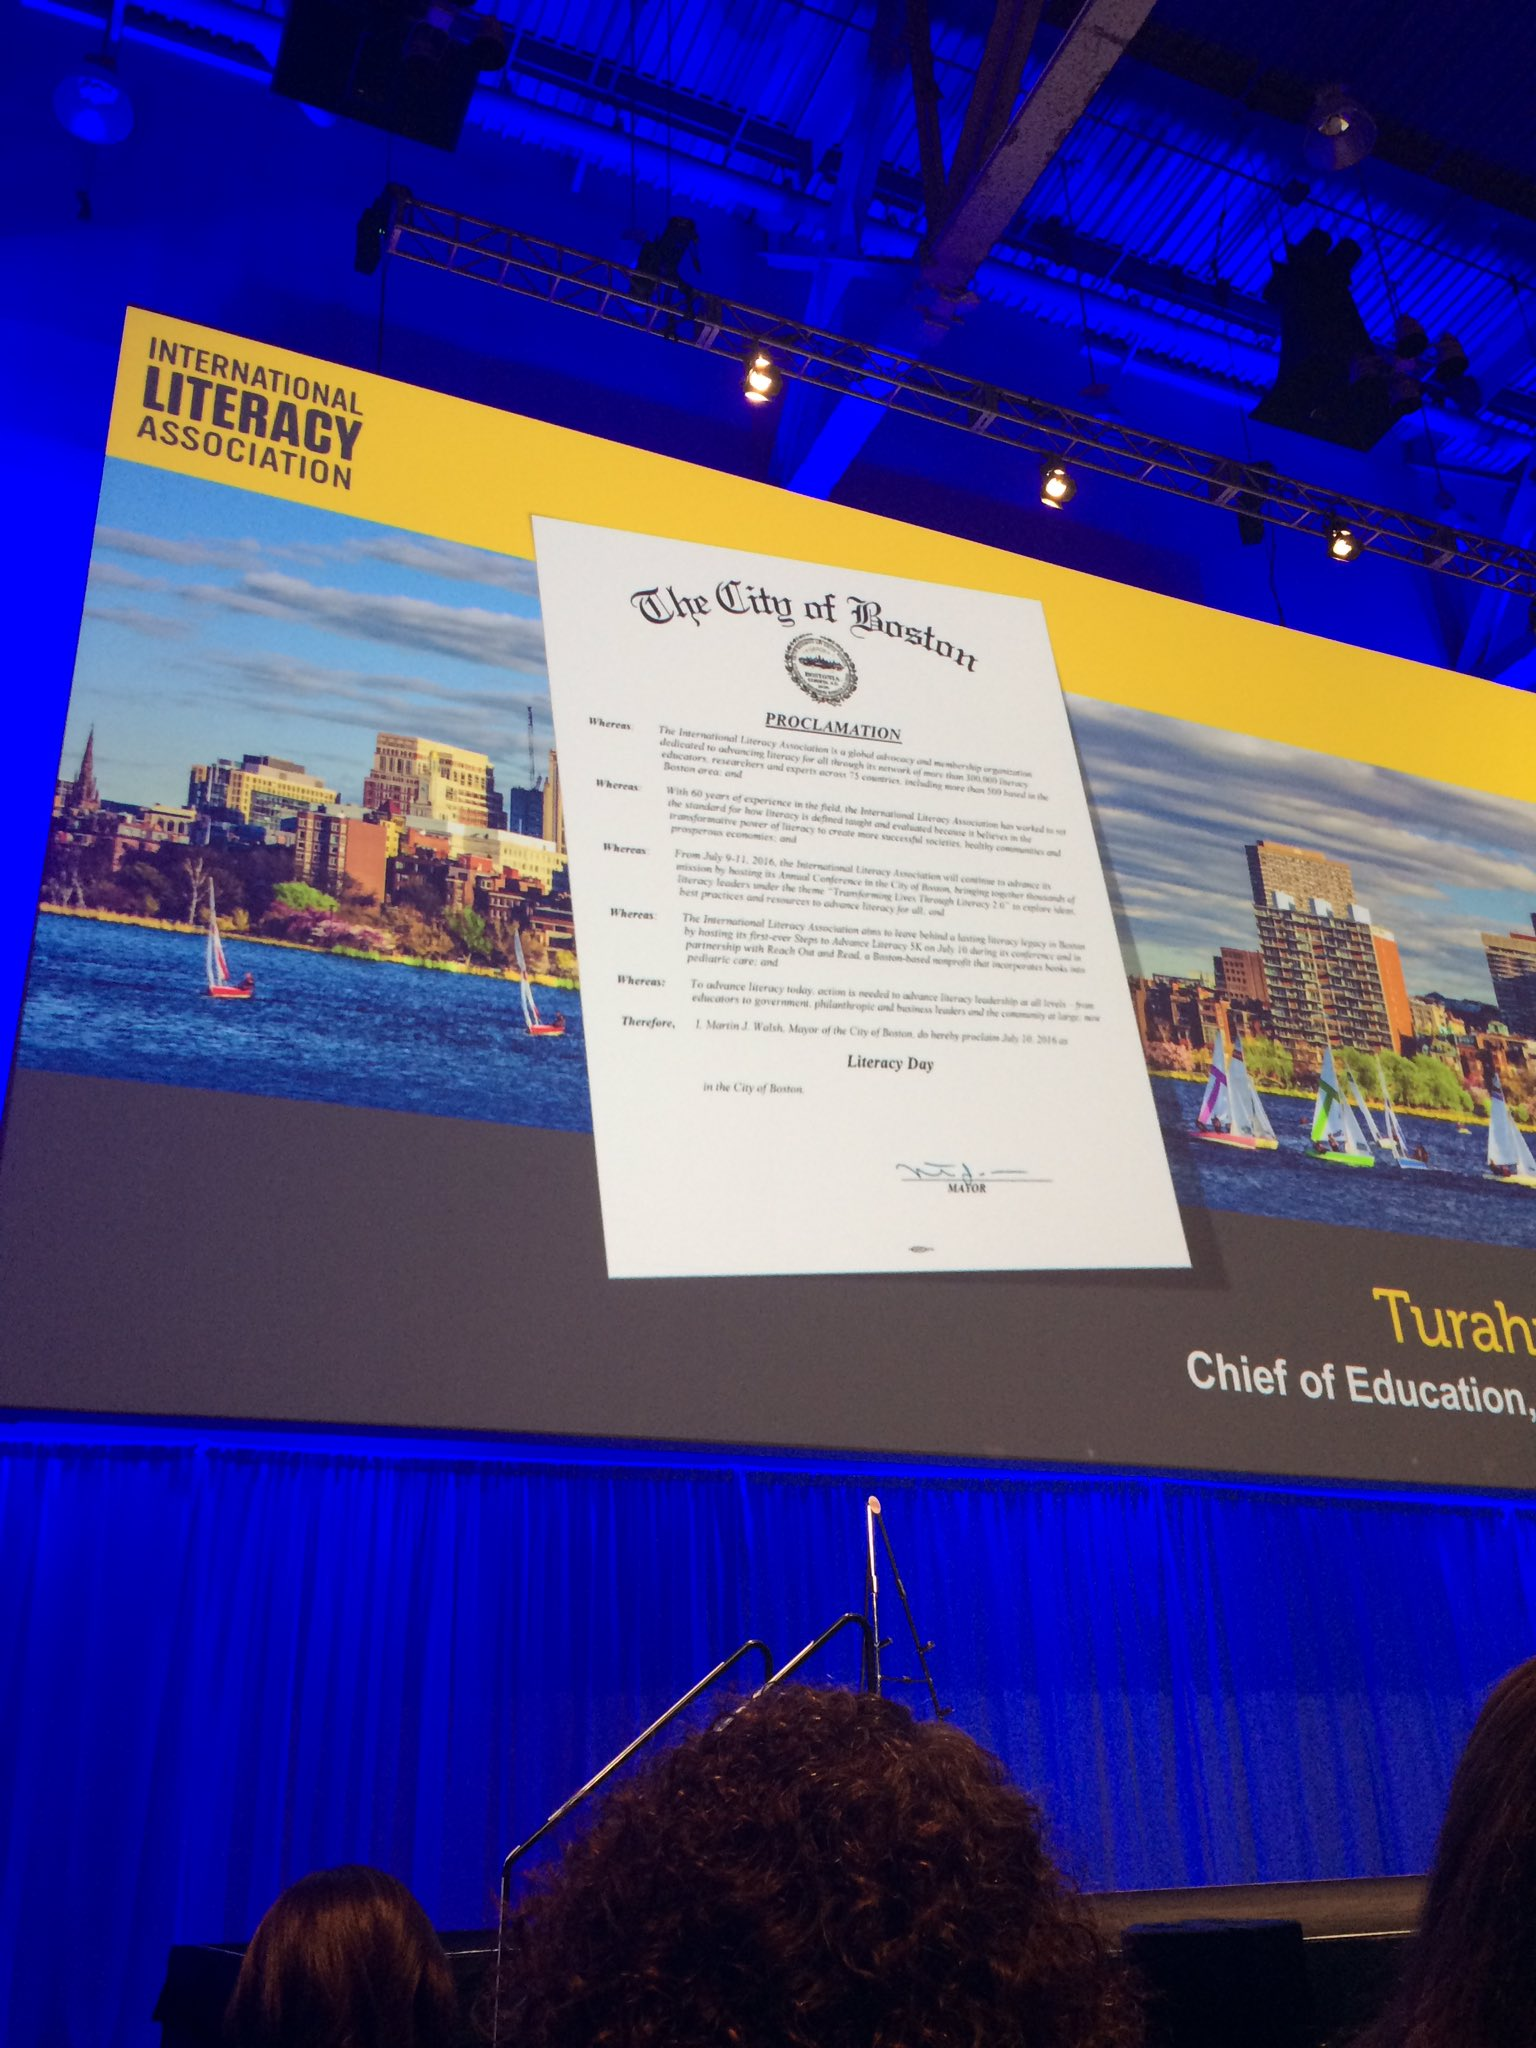 Morning #CatholicEdChat from #ILA16 where tomorrow in Boston it's Literacy Day! https://t.co/hbOcSiDZyv